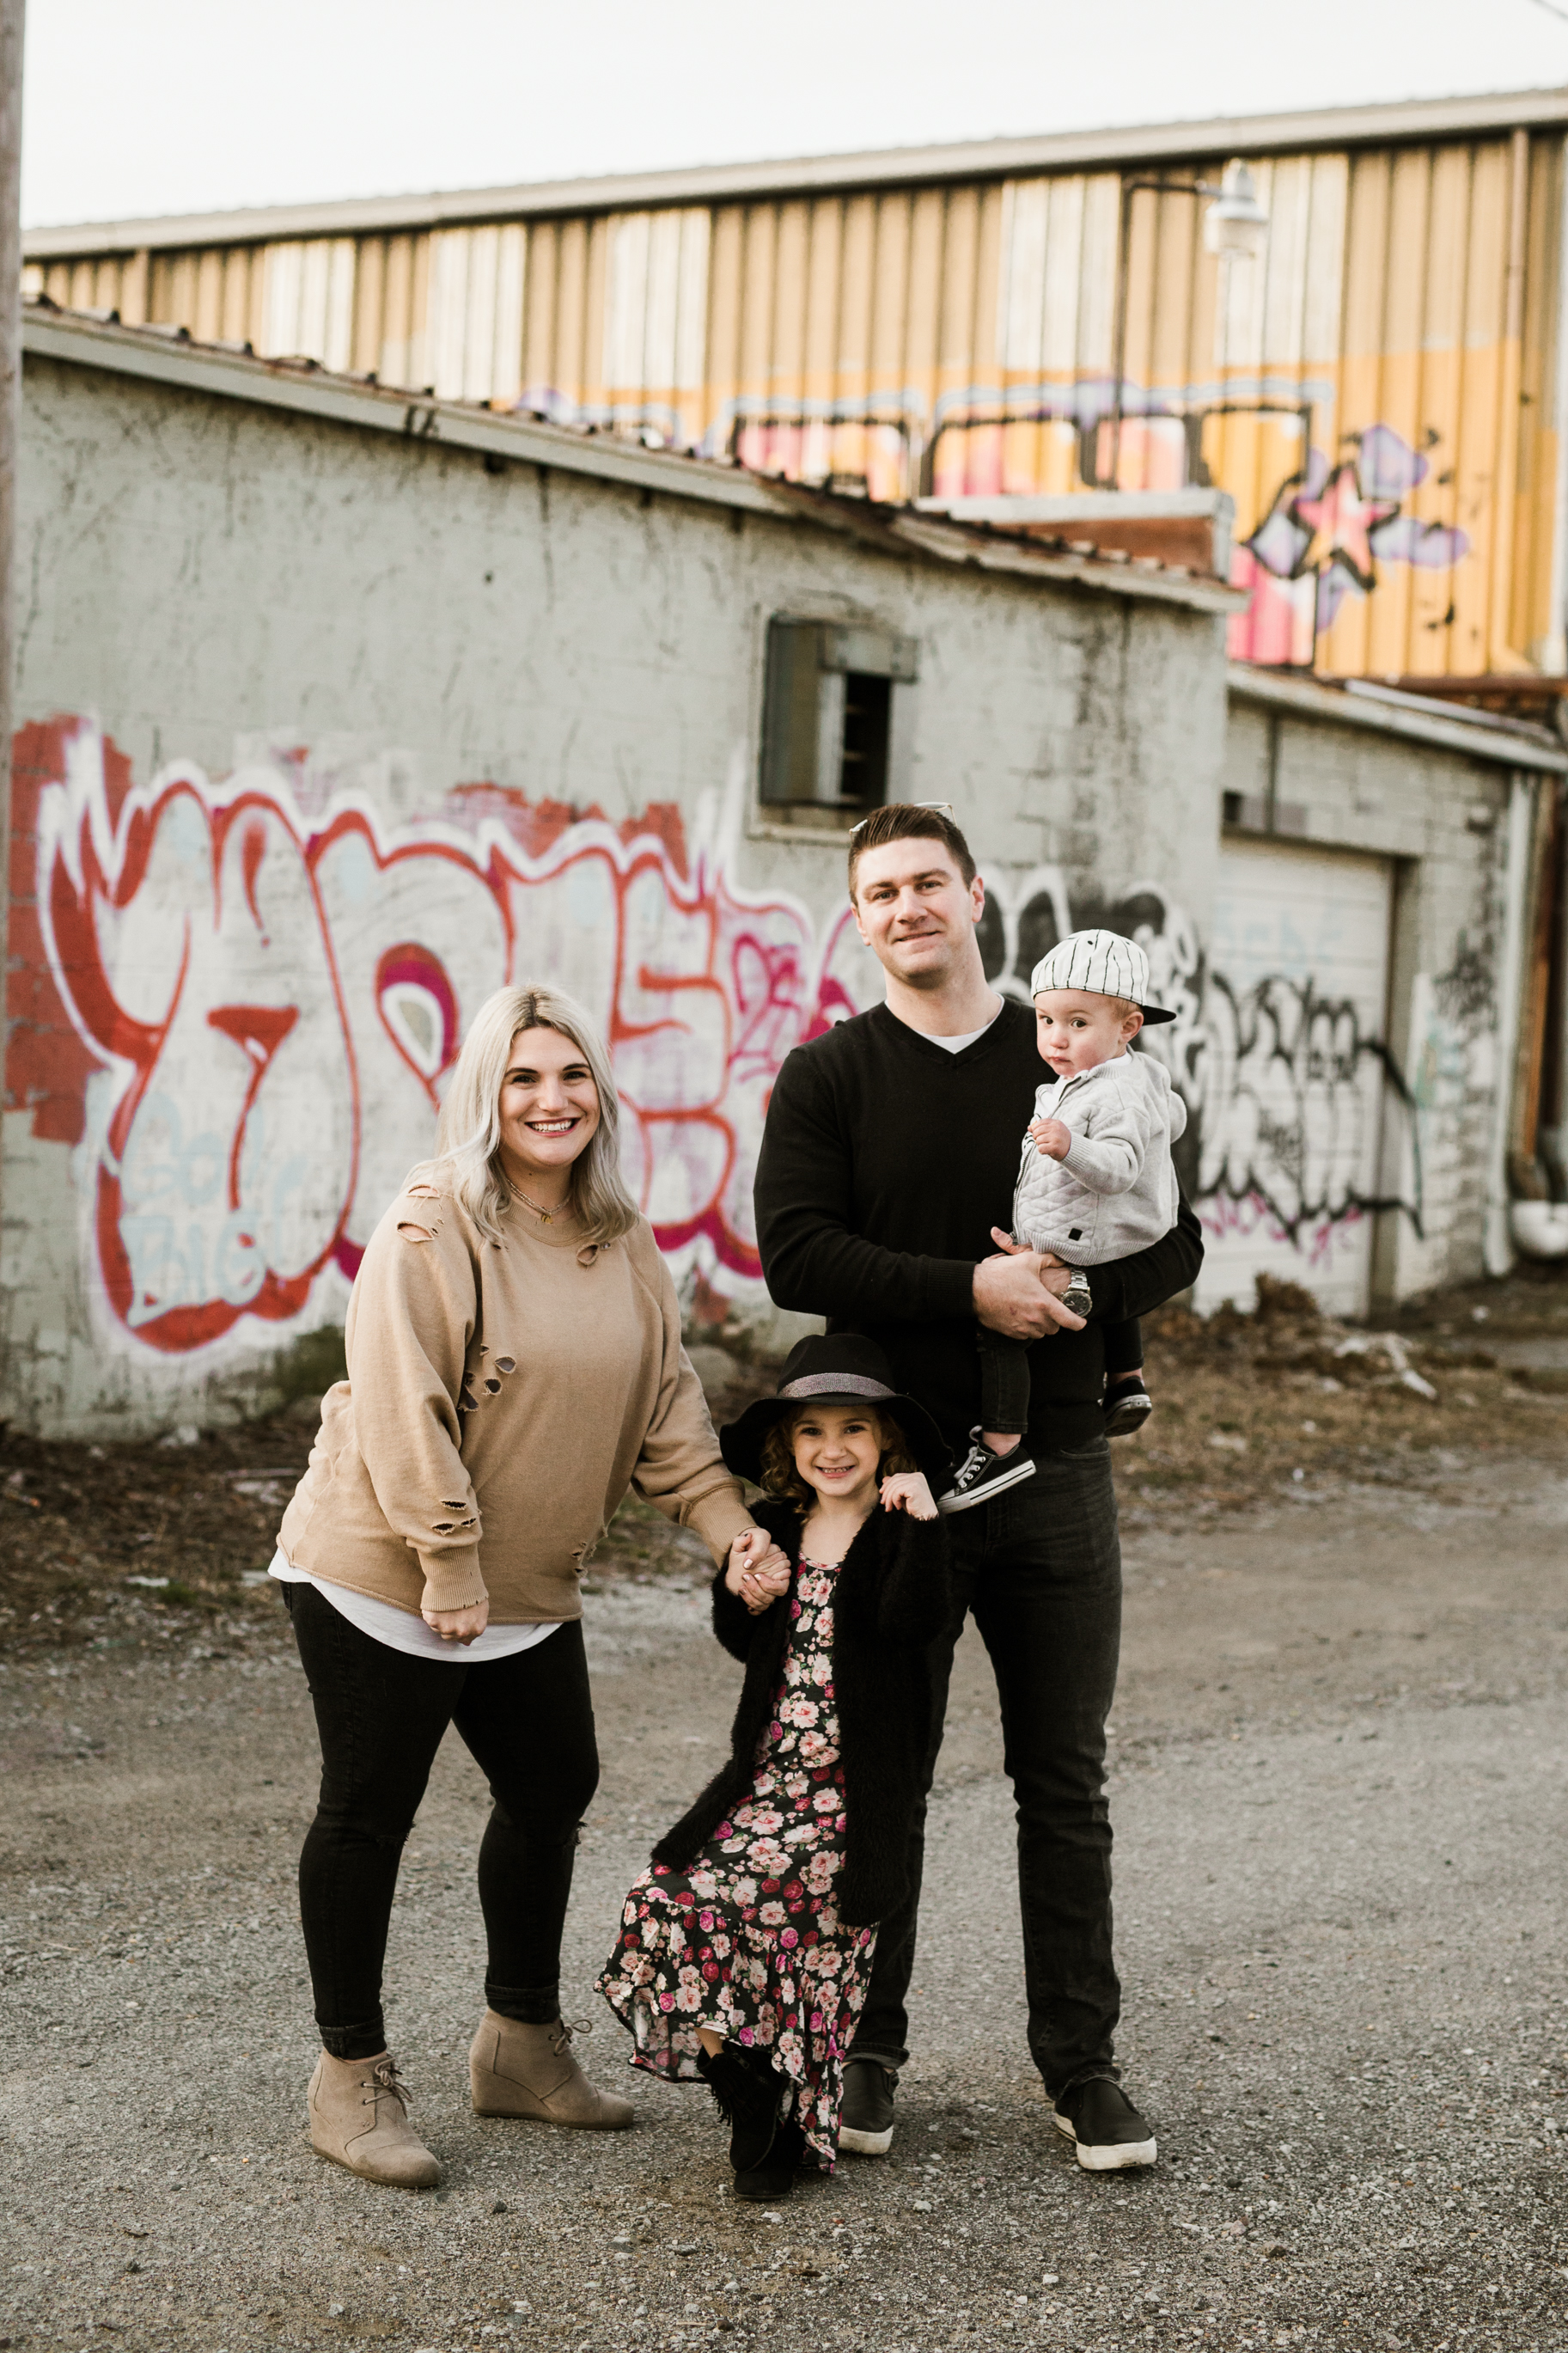 Aldred Family 2018 Crystal Ludwick Photo Louisville Kentucky Wedding Photographer (32 of 58).jpg